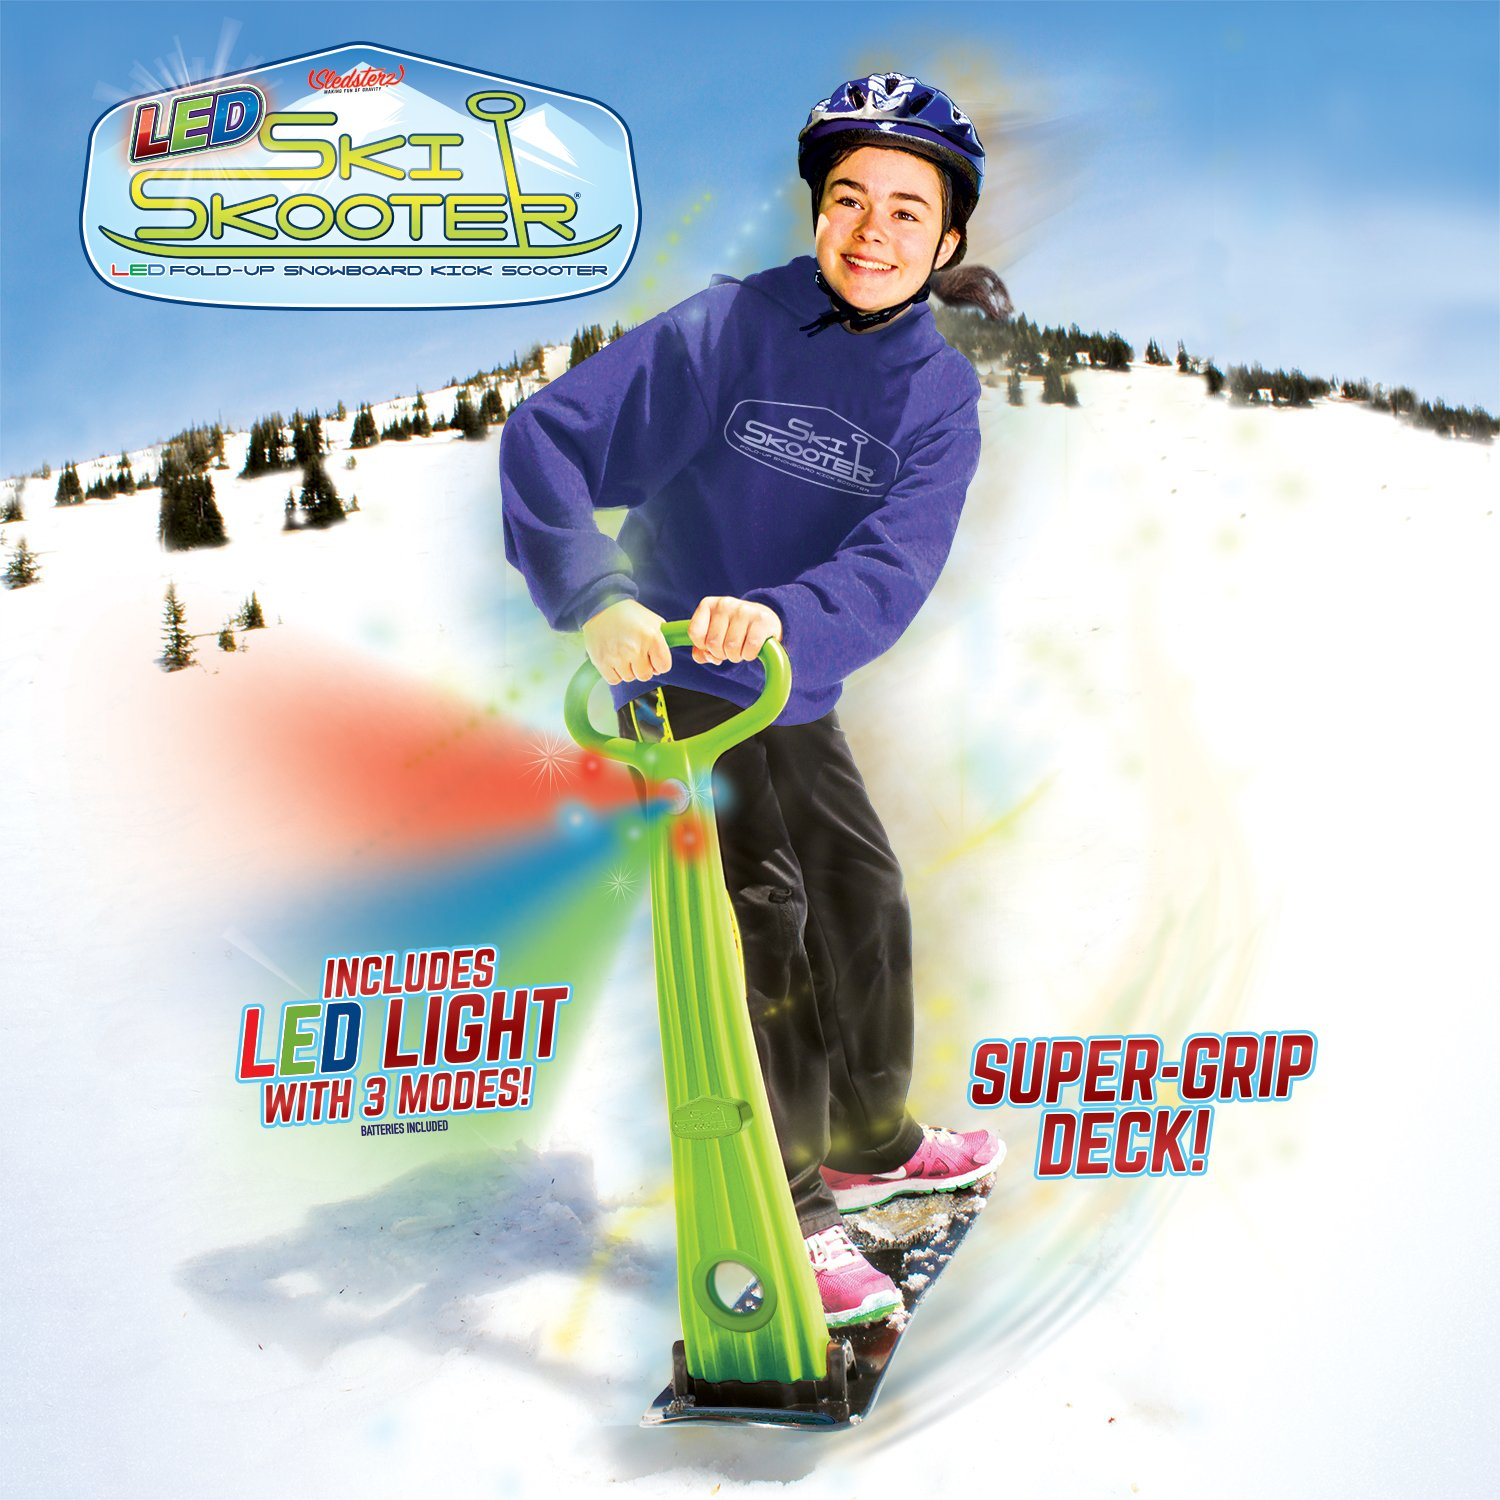 GeoSpace Original LED Ski Skooter: Fold-up Snowboard Kick-Scooter for Use on Snow and Grass, Assorted Colors by Geospace